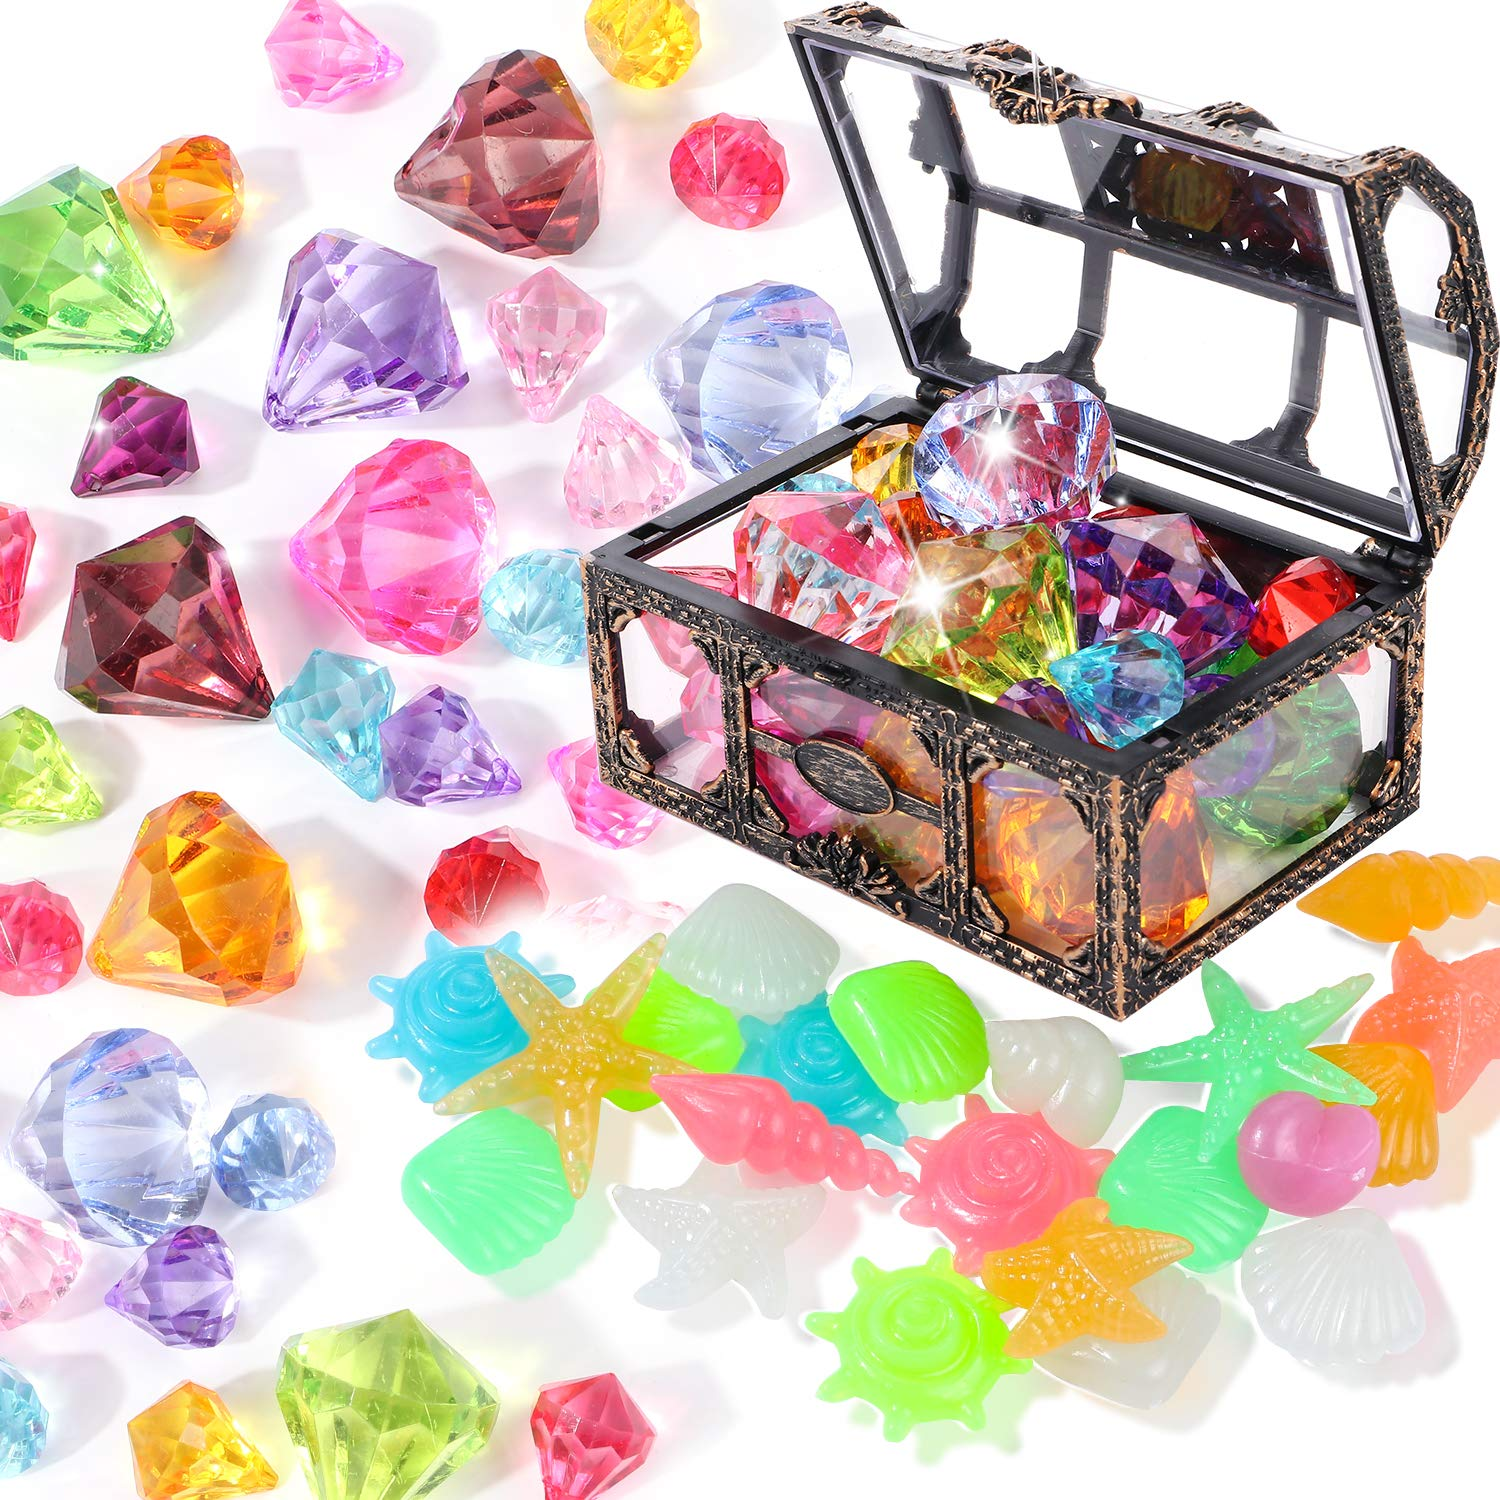 Diving Gem Pool Toy 6 Big Colorful Diamonds Set with Treasure Pirate Box Summer Swimming Gem Diving Toys Set Dive Throw Toy Set Underwater Swimming Toy for Pool Use Treasures Gift Sets silver white